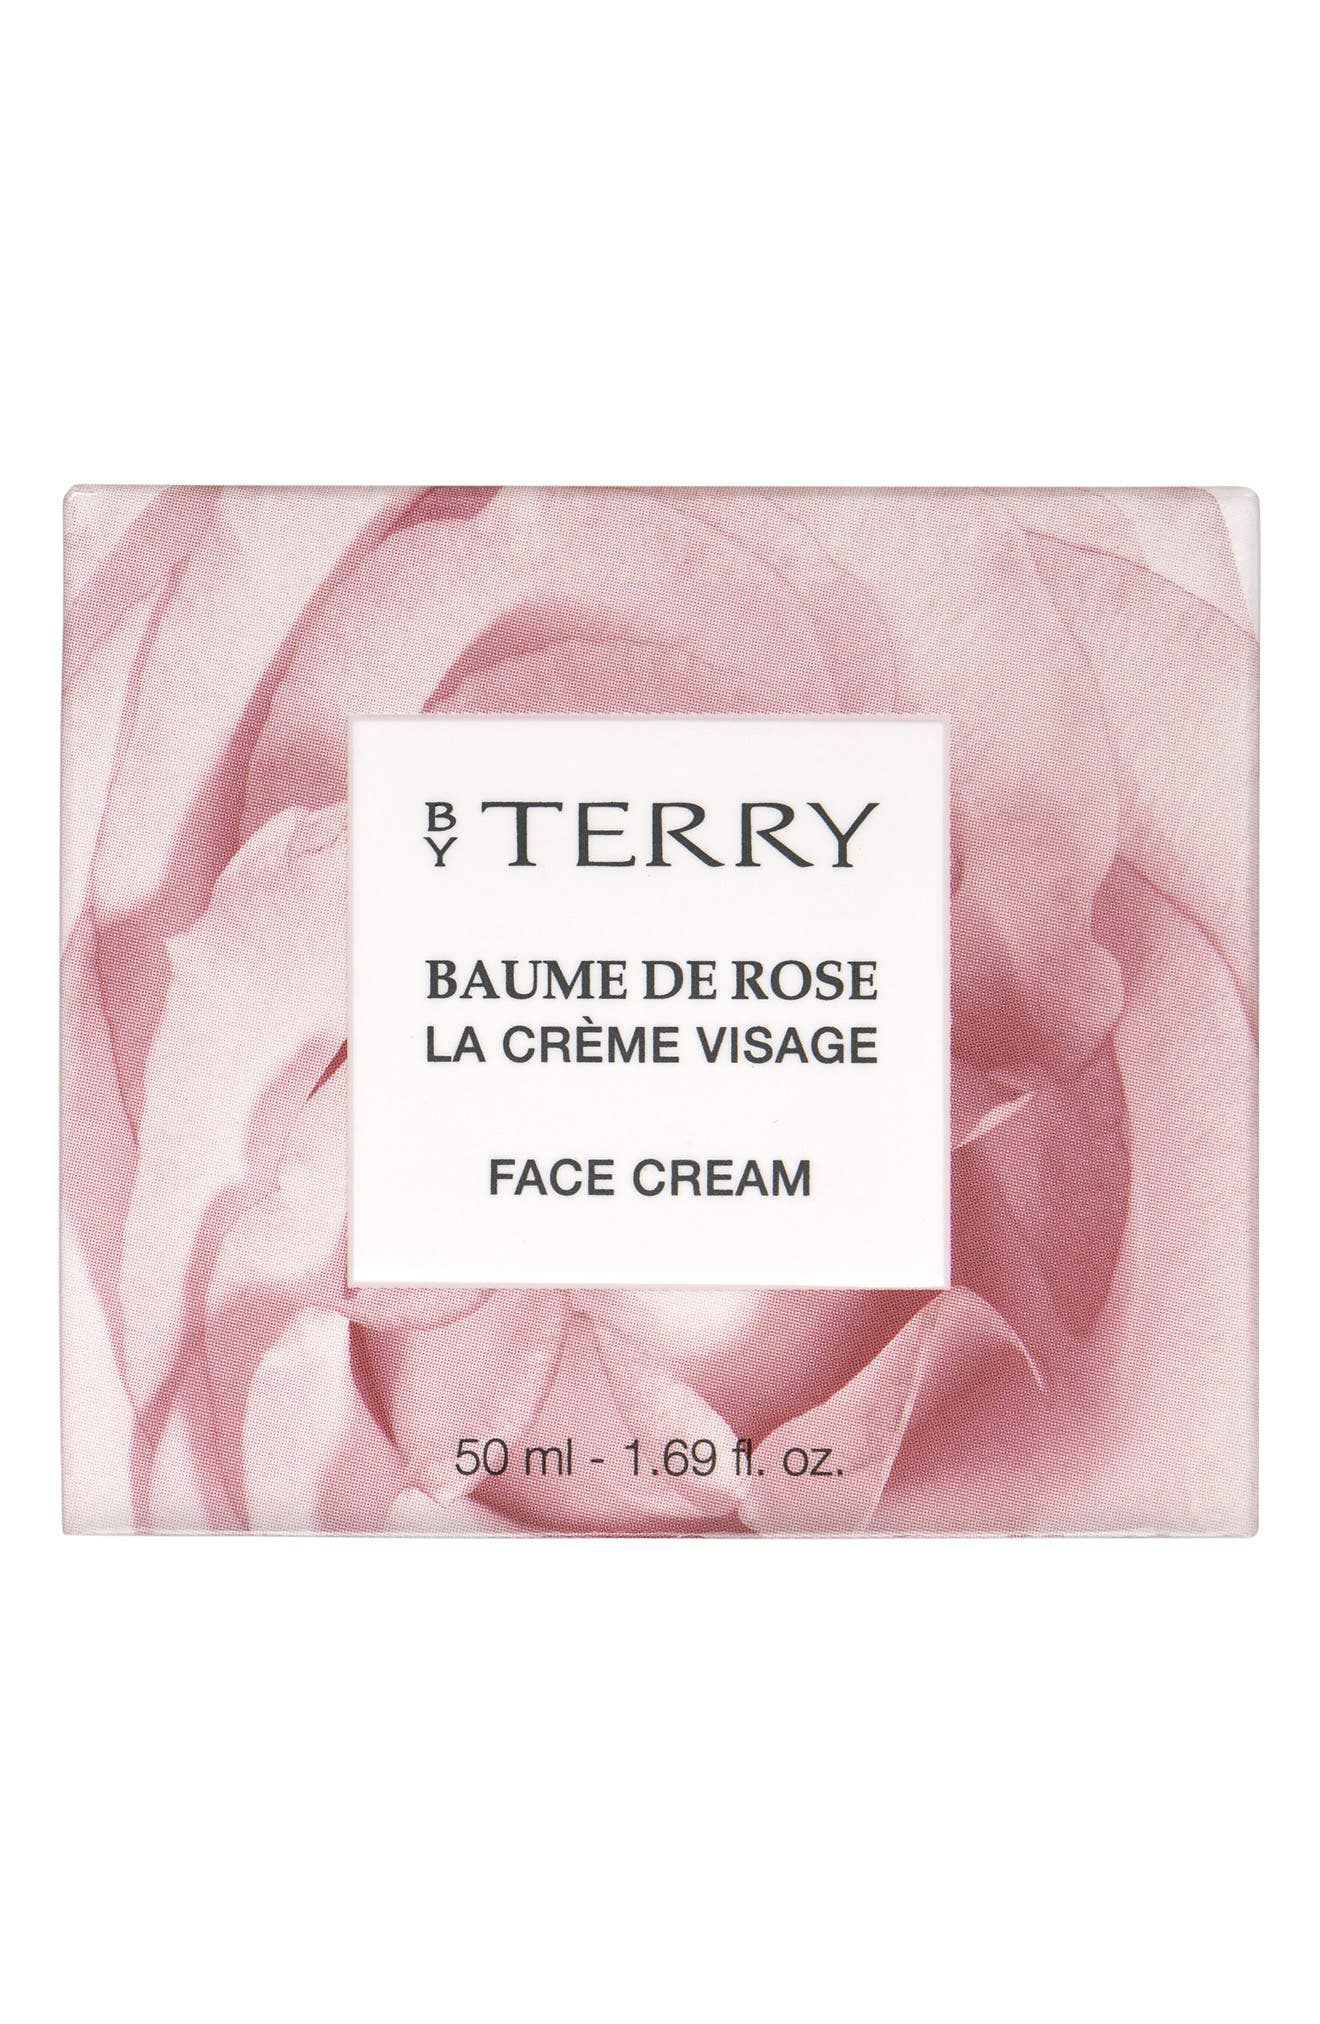 Cellularose Moisturizing CC Cream by By Terry #5